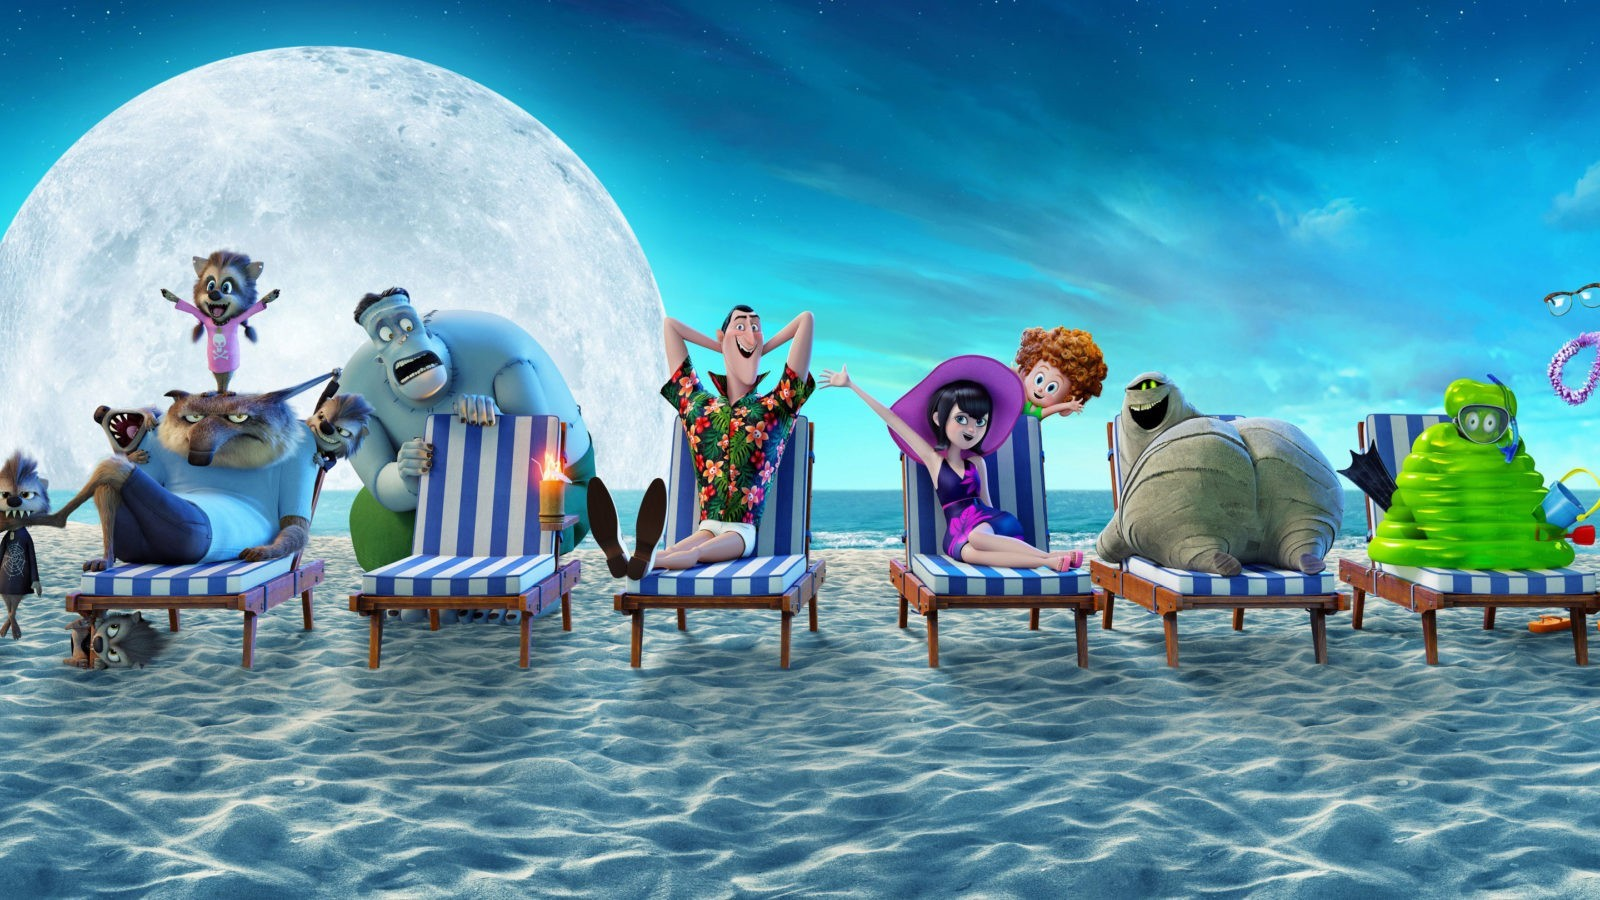 Hotel Transylvania 3 Summer Vacation hd wallpaper